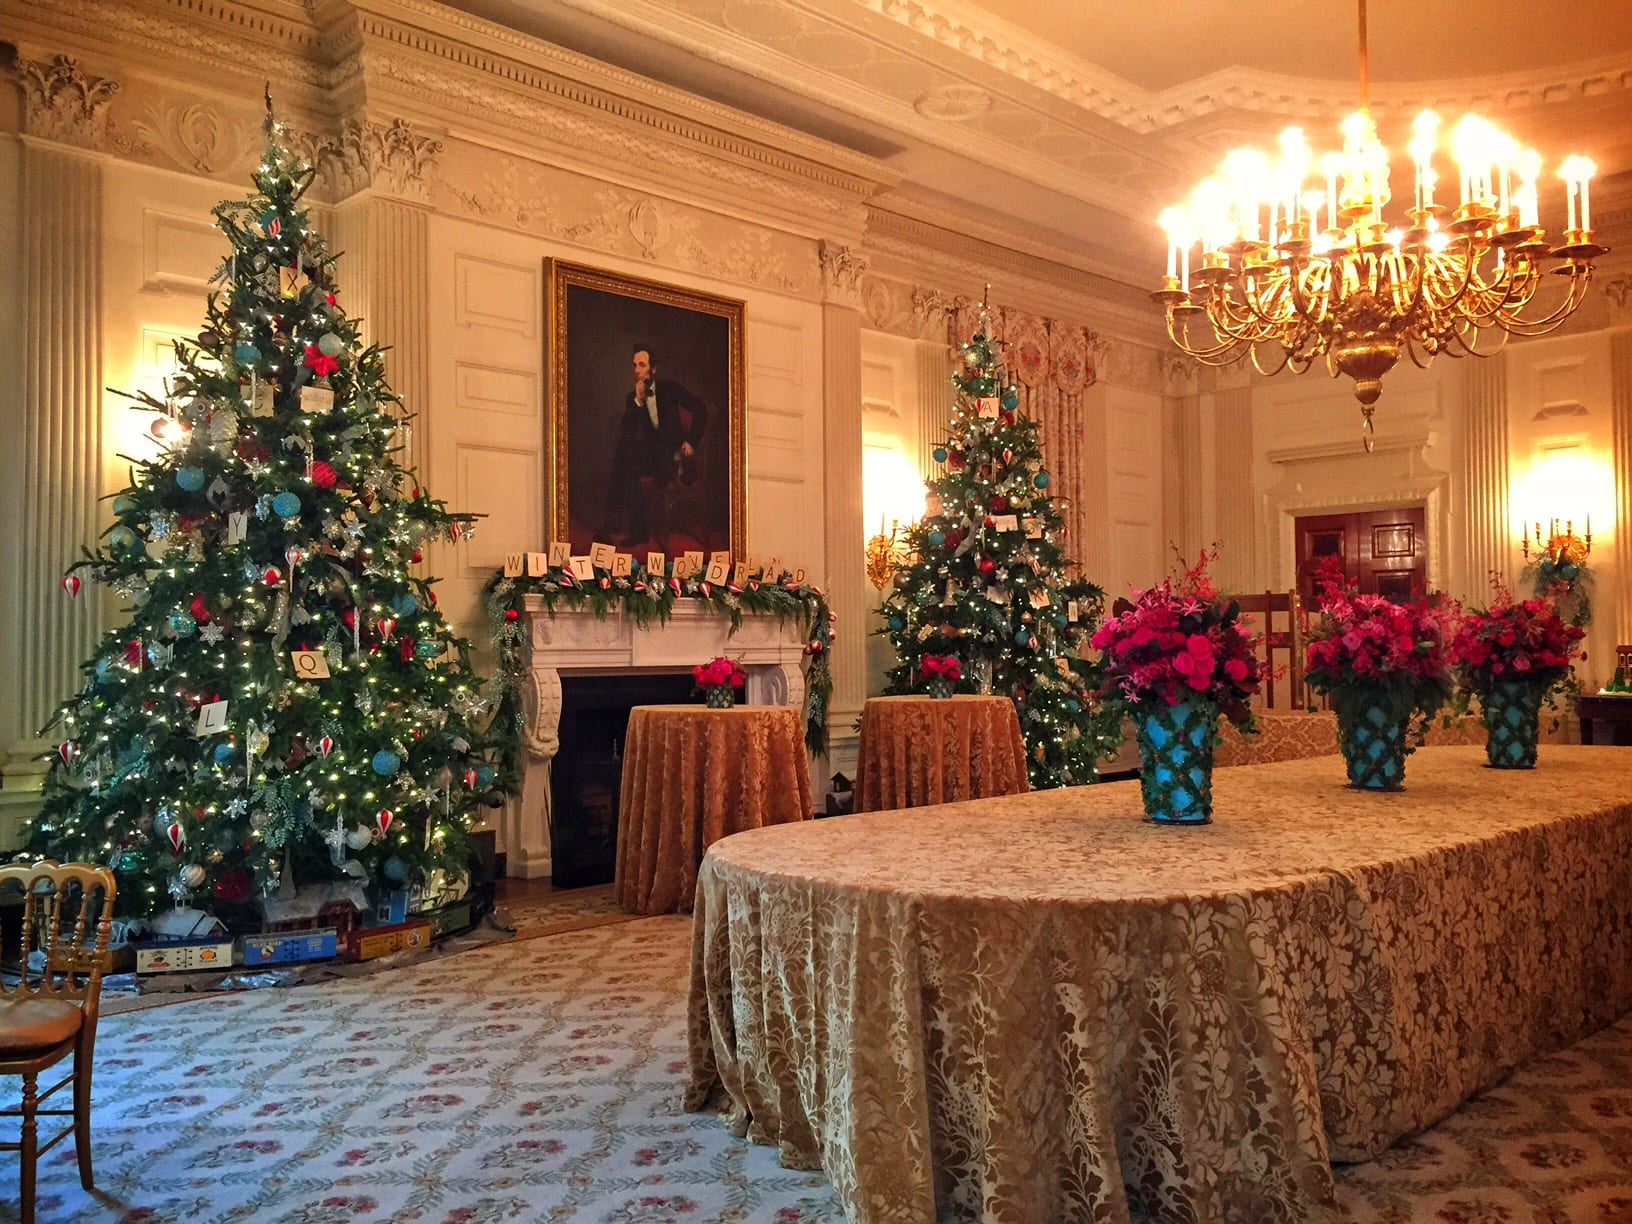 White house christmas ornaments by year - White House At Christmas